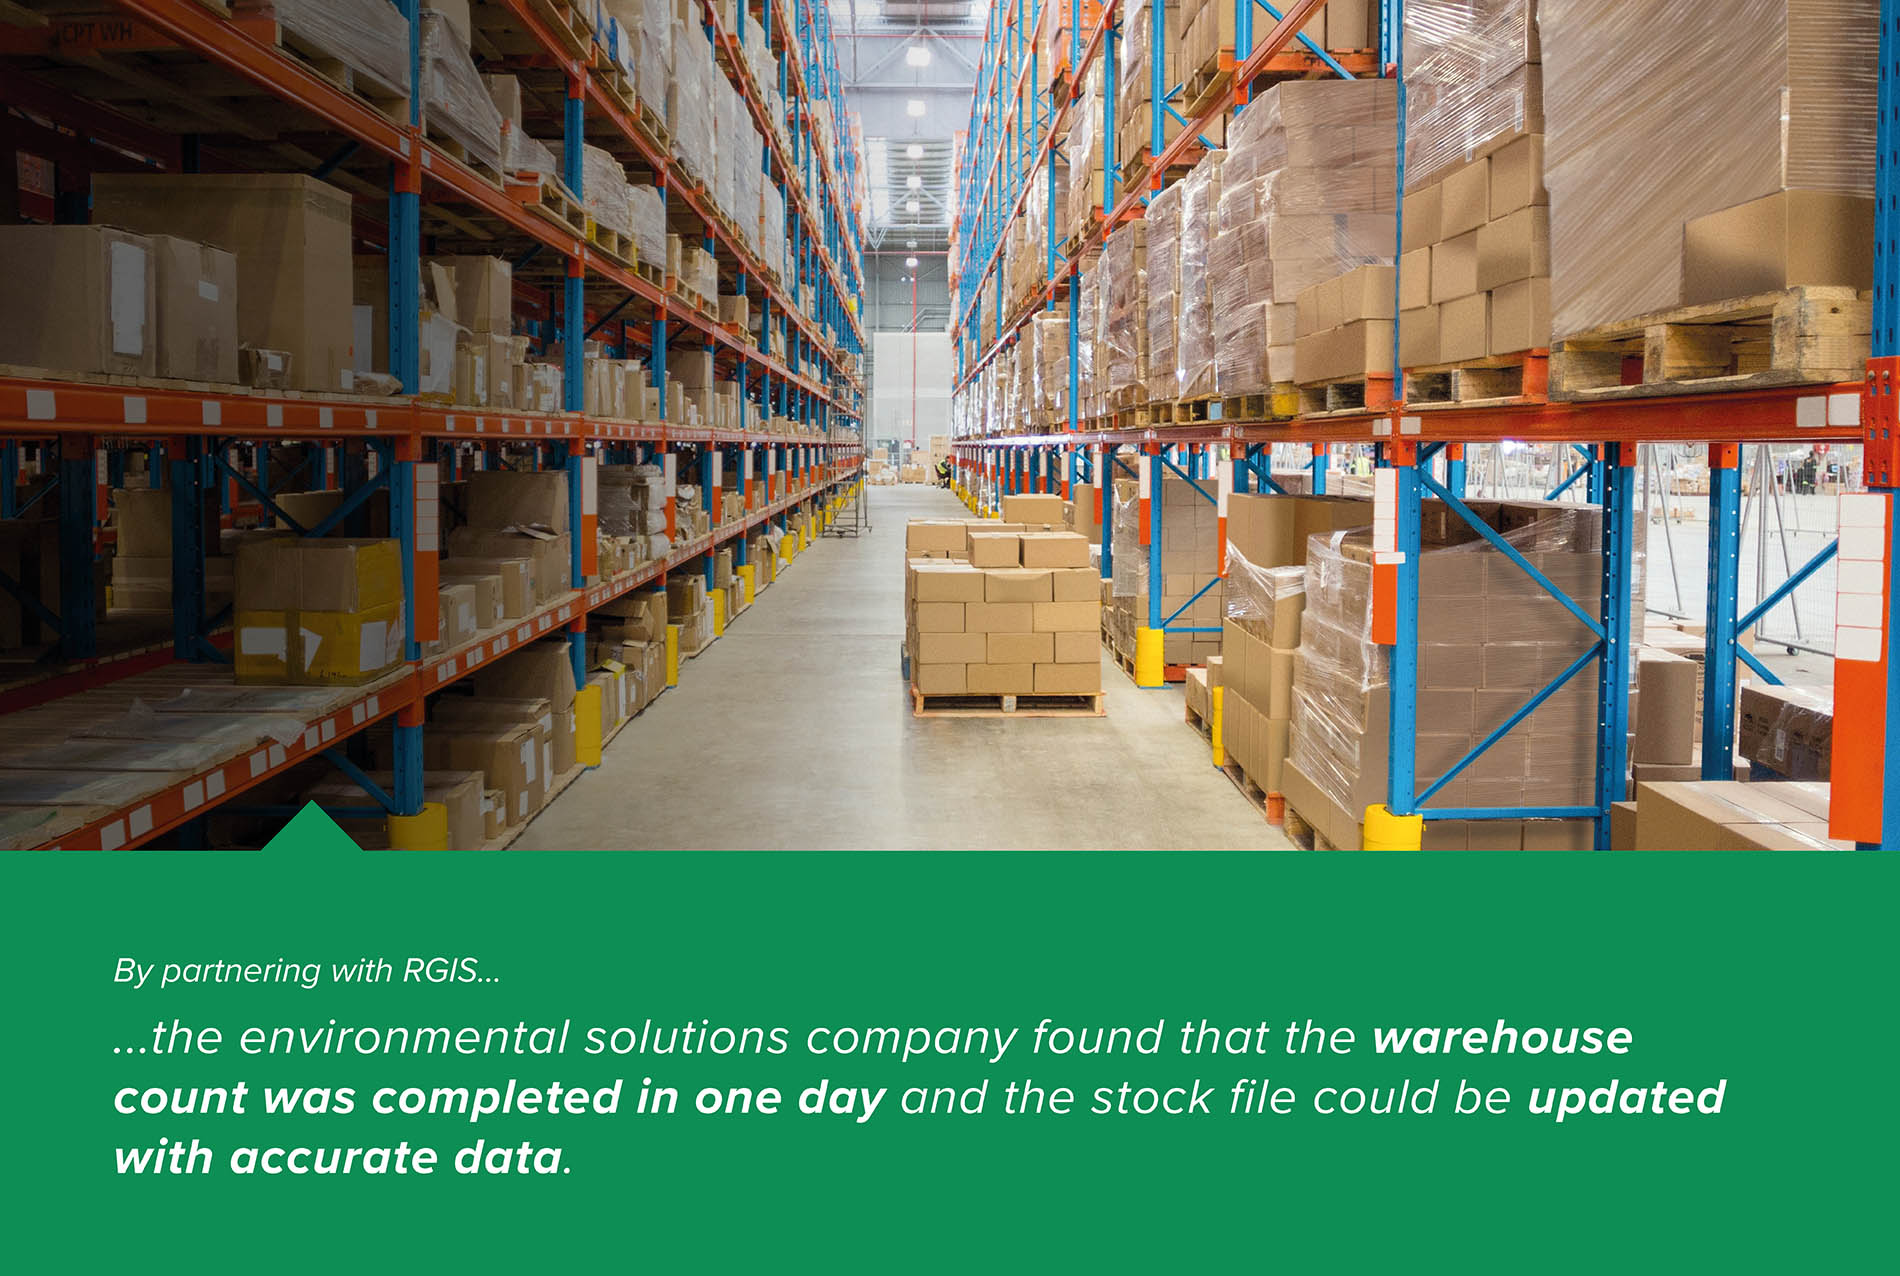 Manual Warehouse Count With a One Day Turnaround